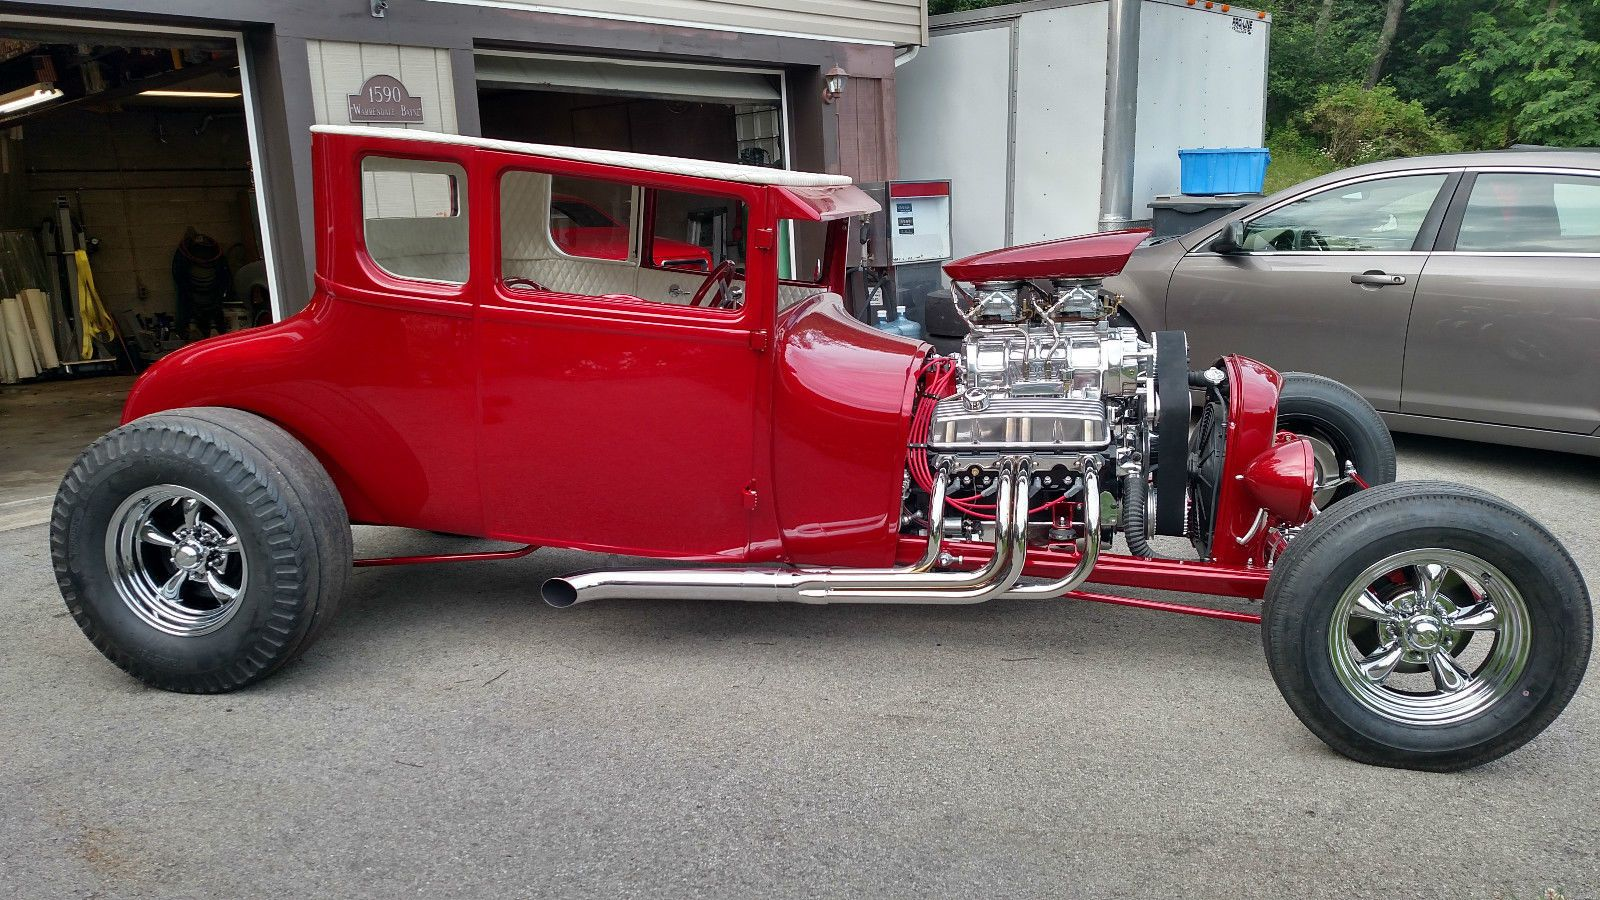 1927 Ford Model T Coupe Hot Rod | Hot rods for sale | Pinterest ...